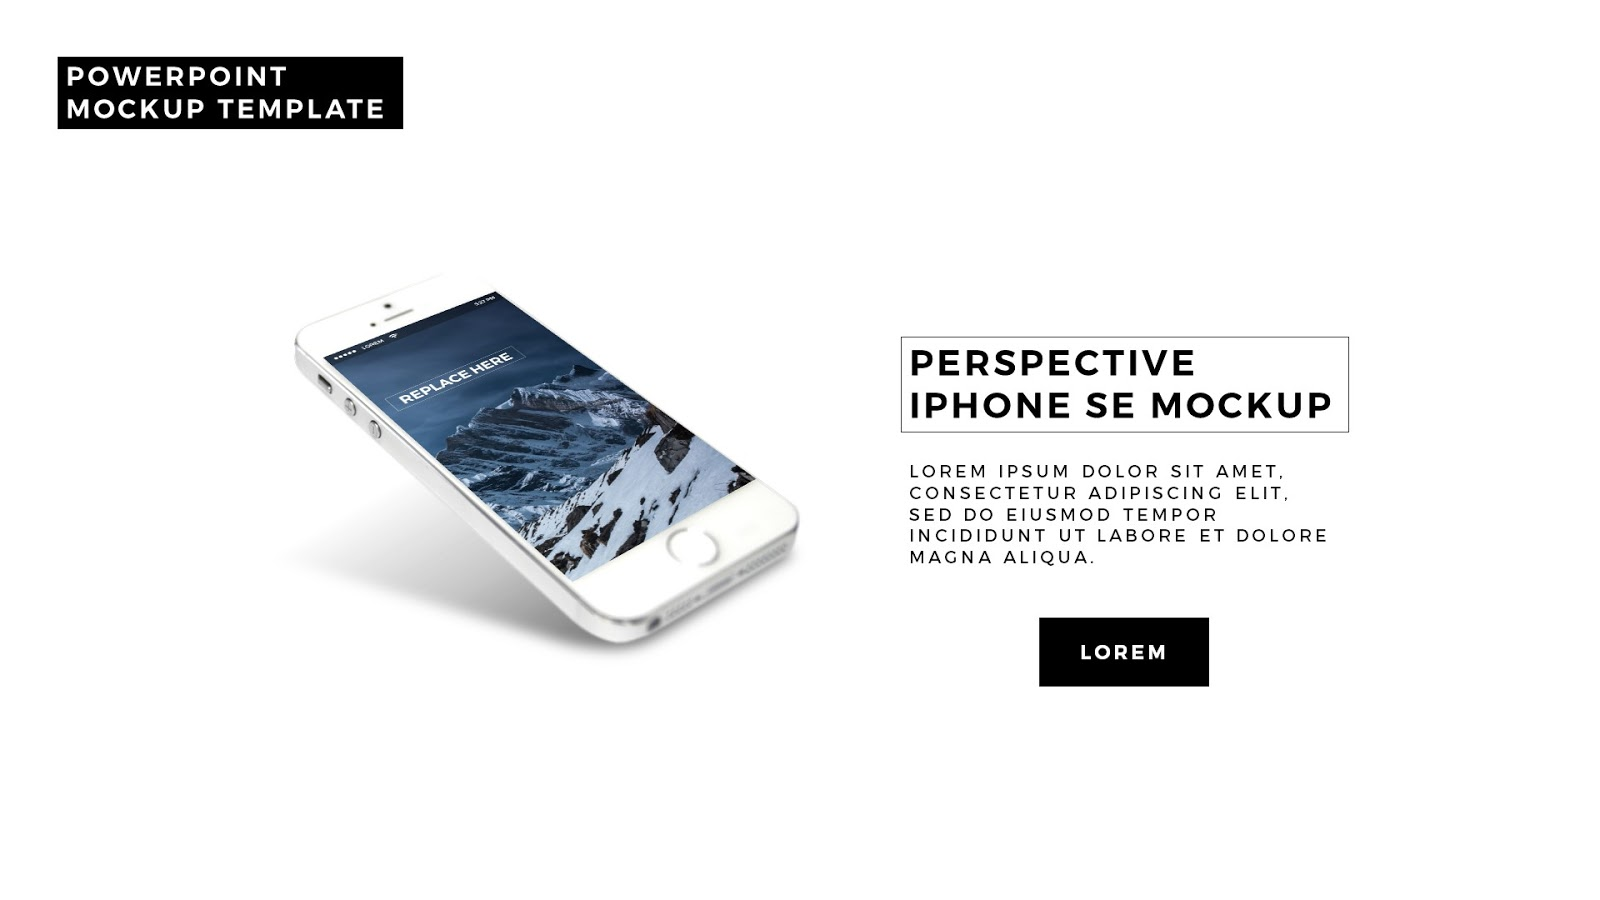 free powerpoint template with perspective iphone se mockup, Modern powerpoint